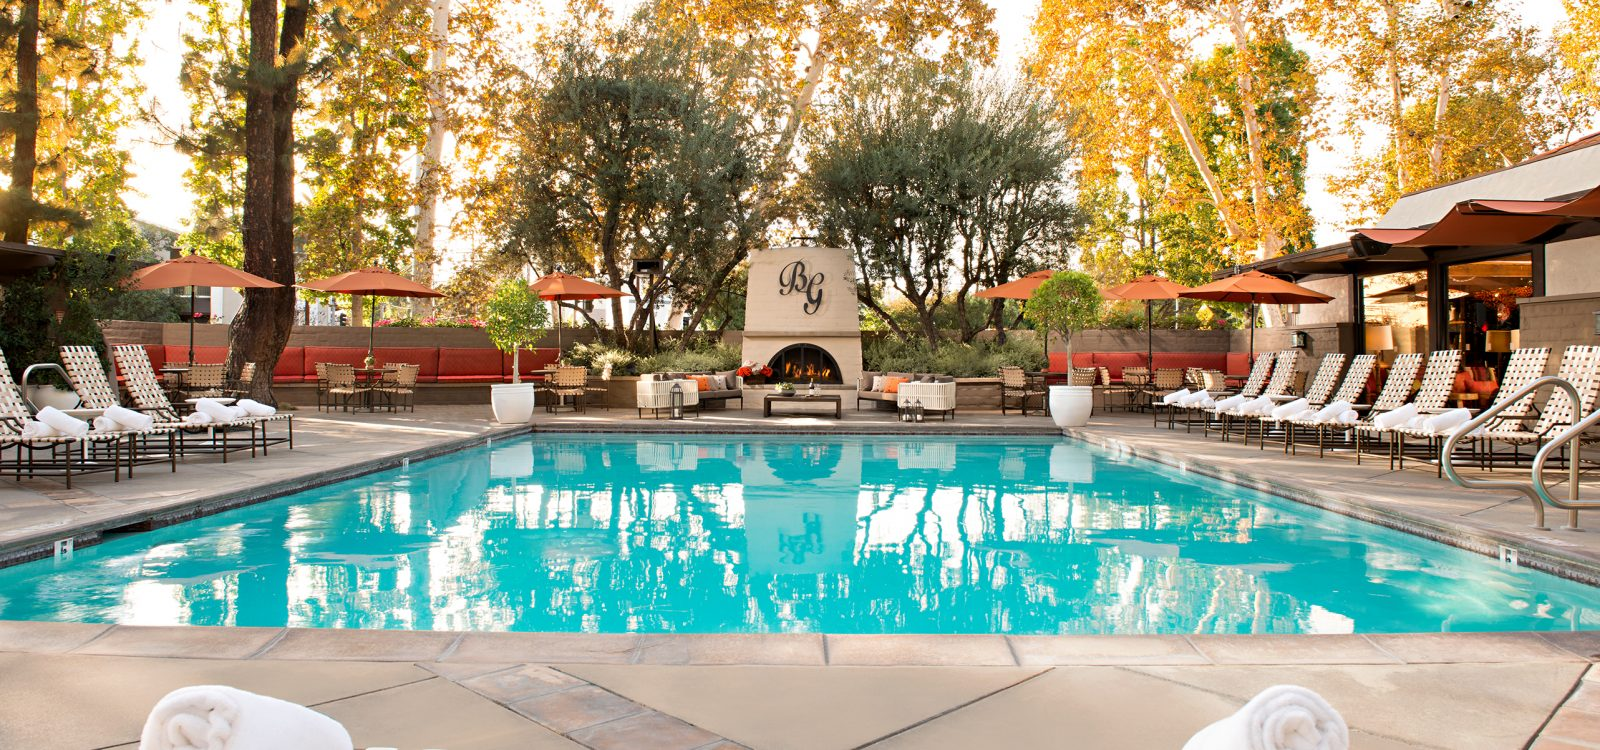 outdoor pool area at The Garland Hotel in CA